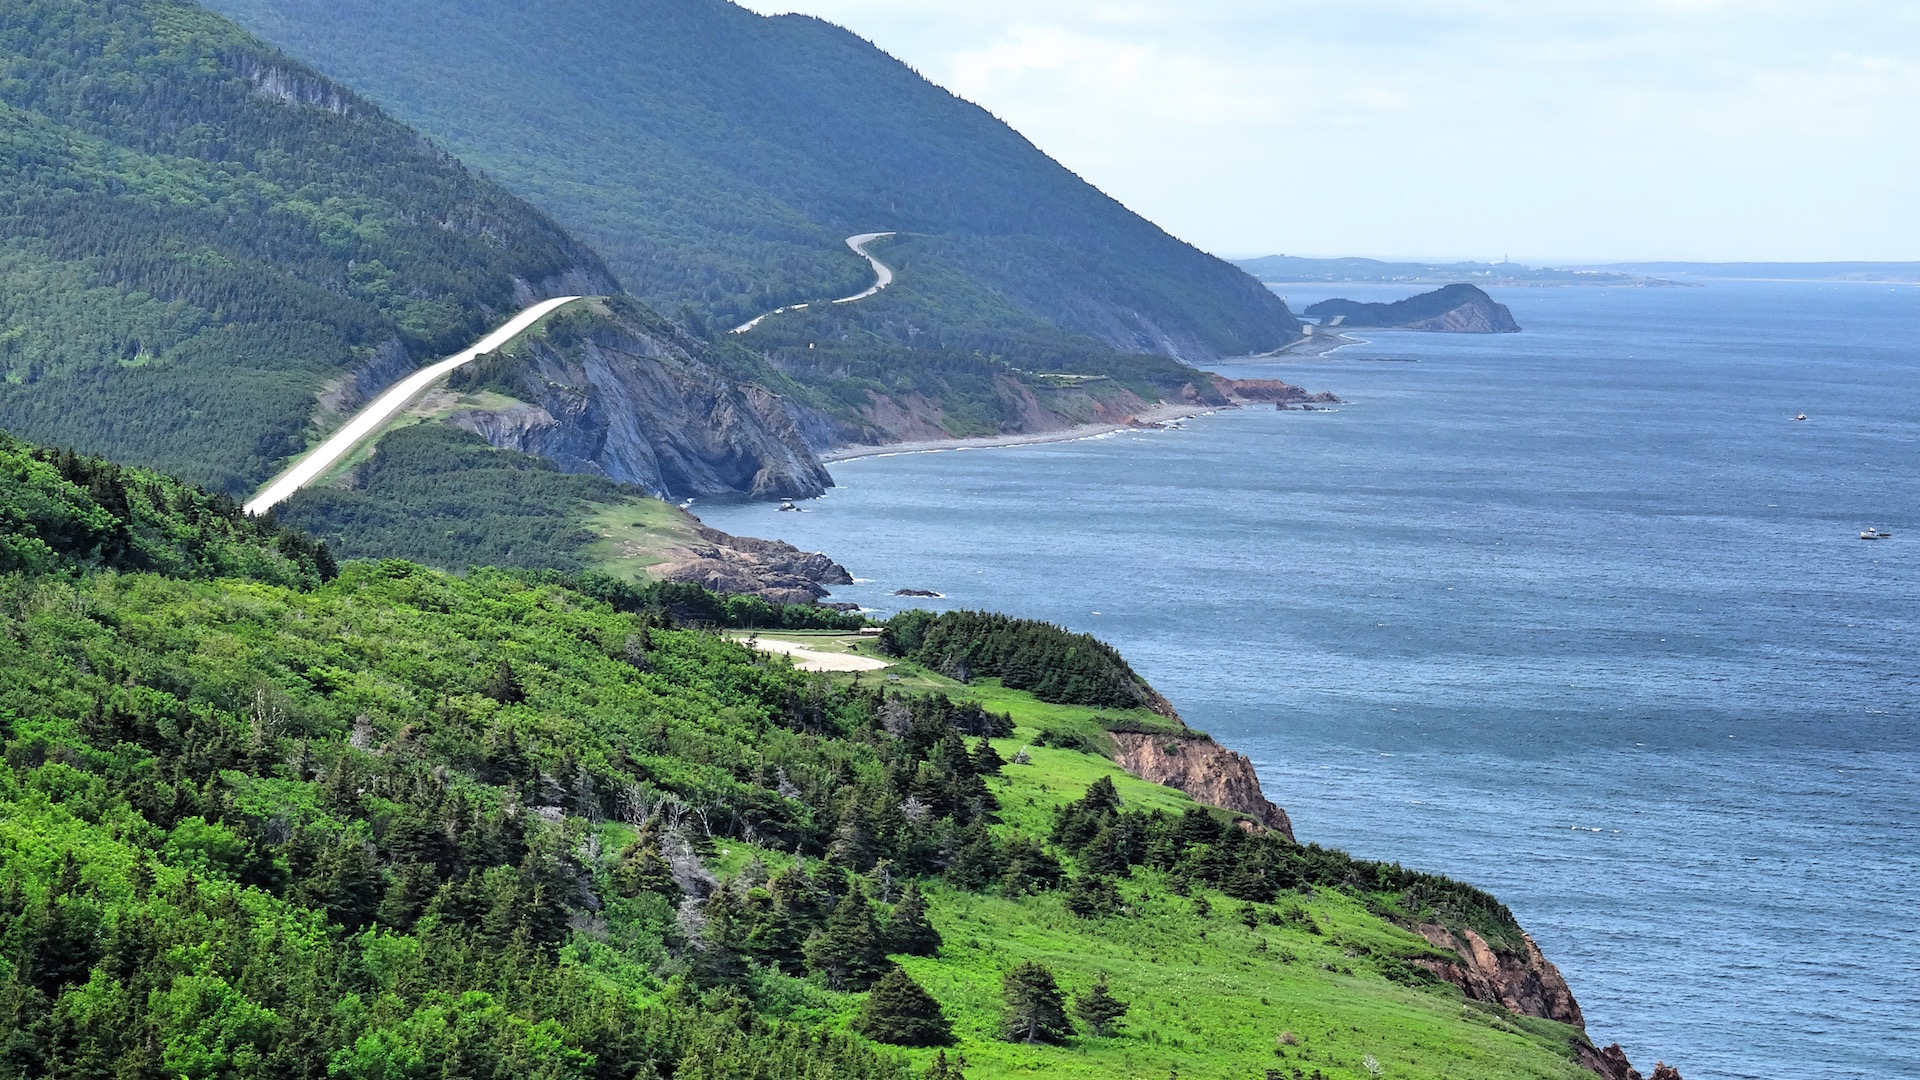 Riding the Cabot Trail